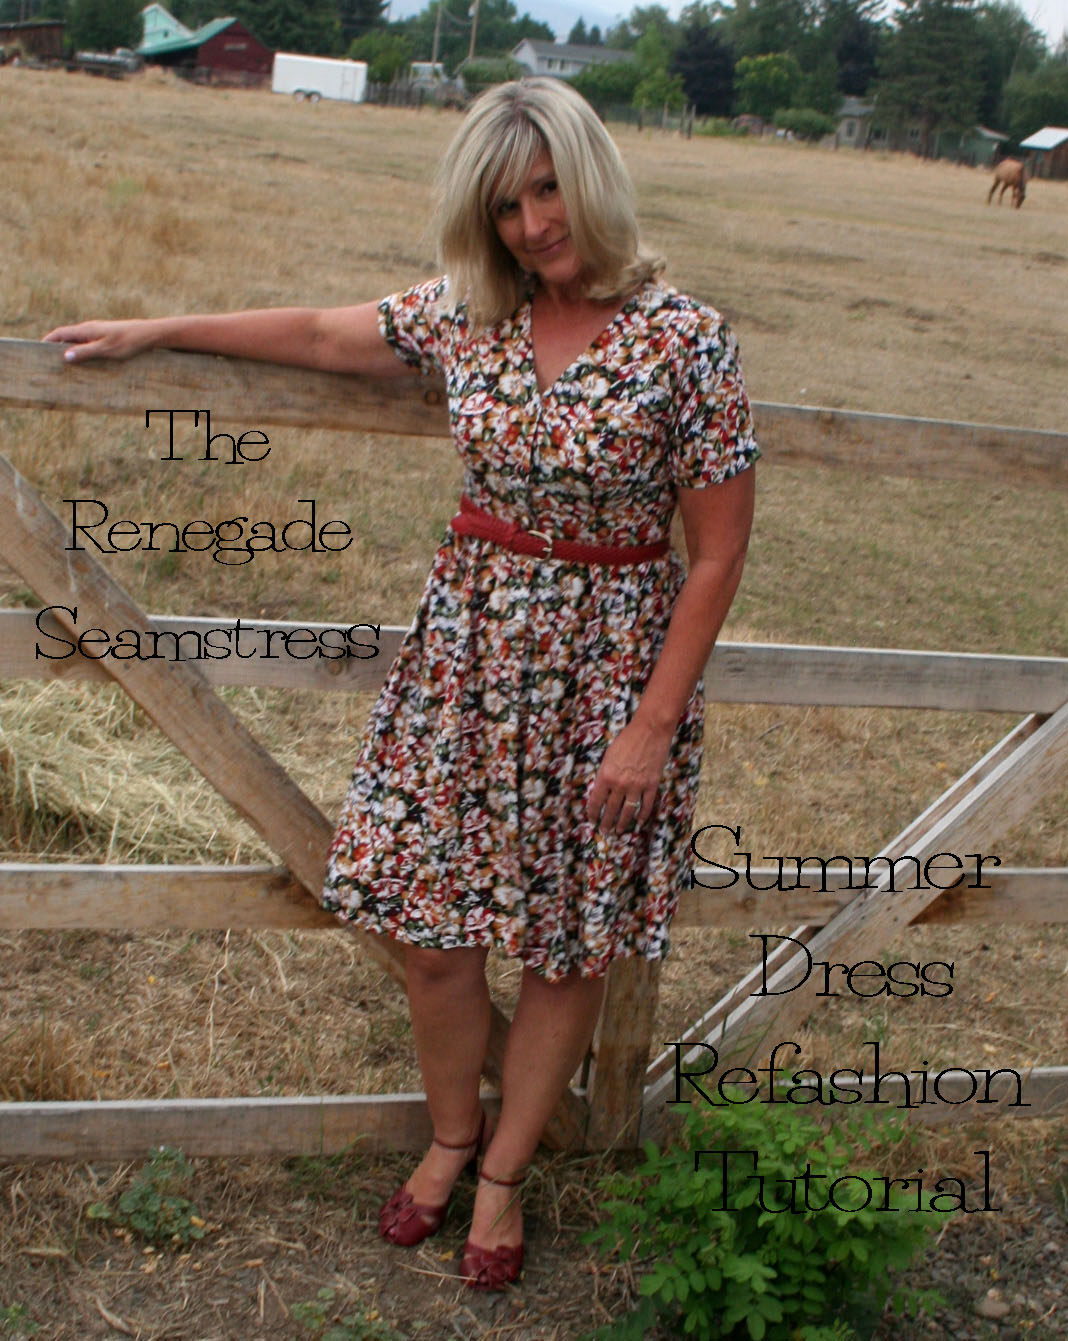 Casual Mother Of The Groom Dresses For Barn Wedding 51 Off Plykart Com,Pastel Pink Dress For Wedding Guest